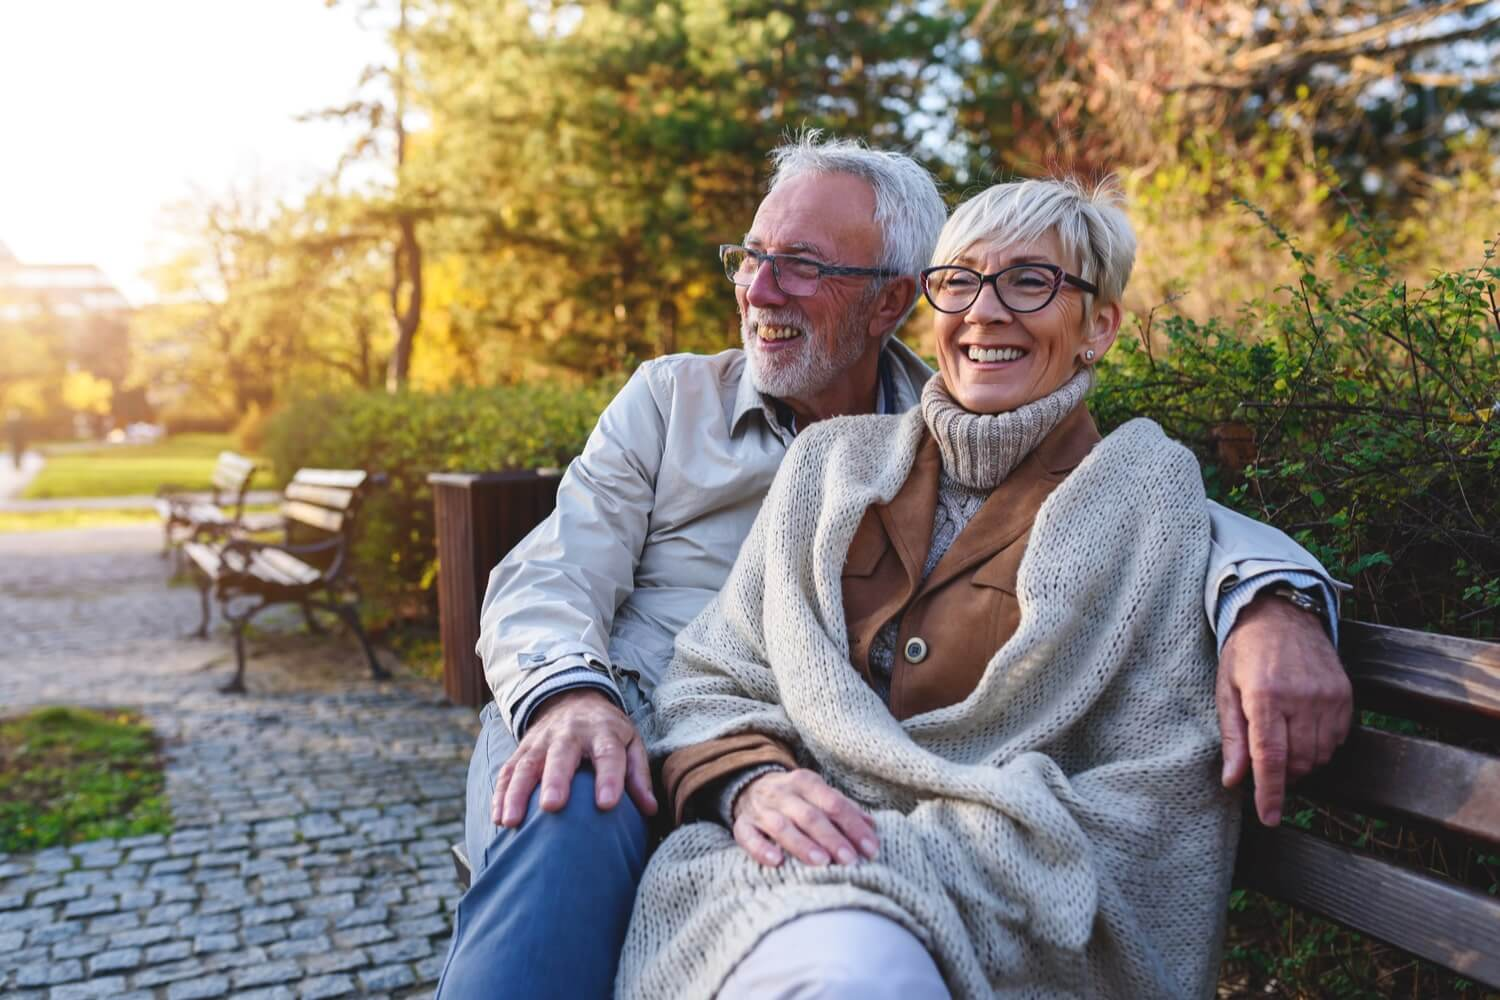 Relaxed senior Australian couple sit on a bench